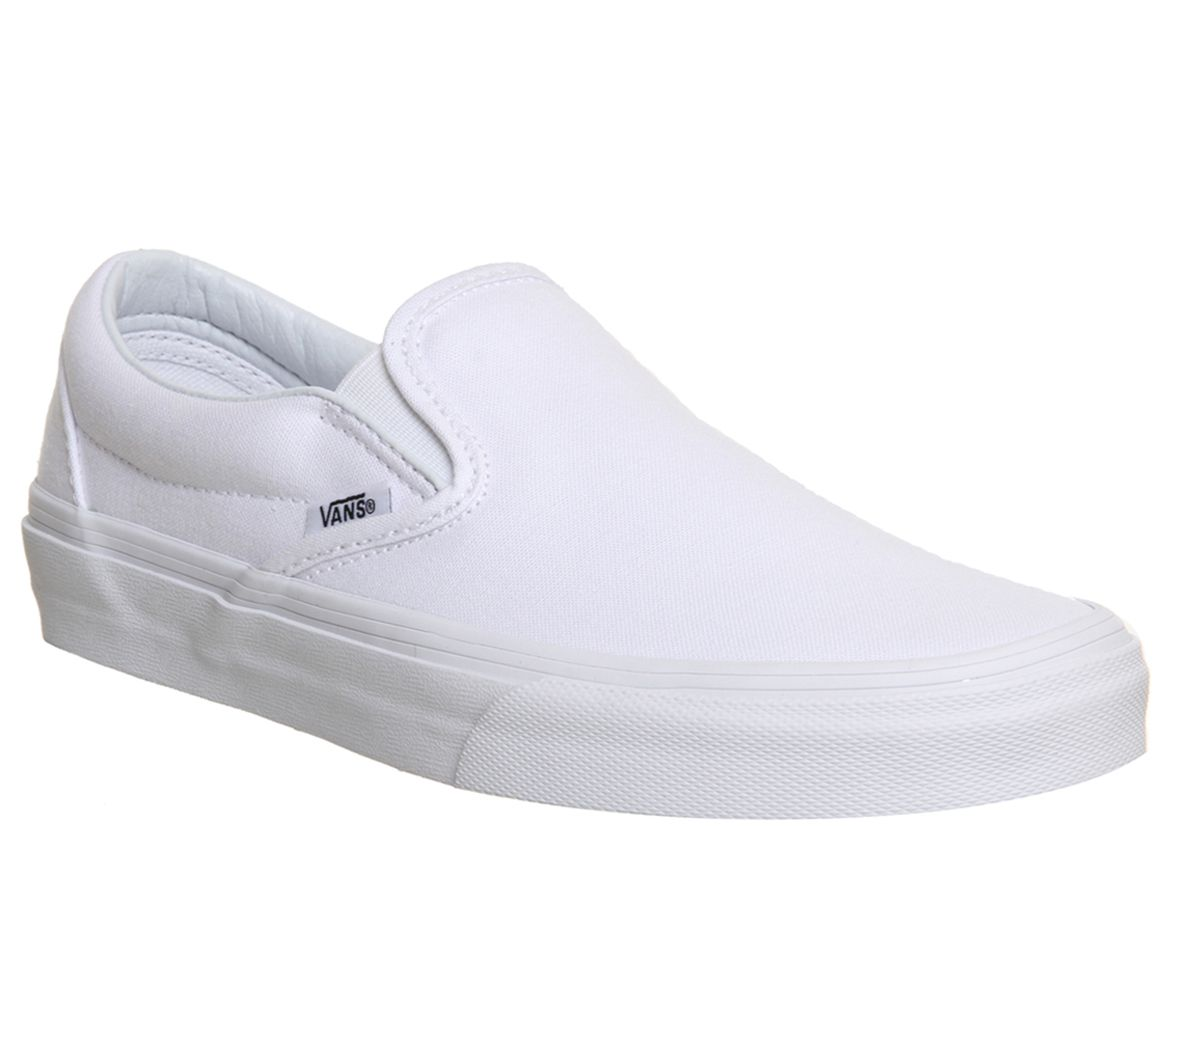 62876d3fce Vans Classic Slip On Trainers White Mono - Unisex Sports